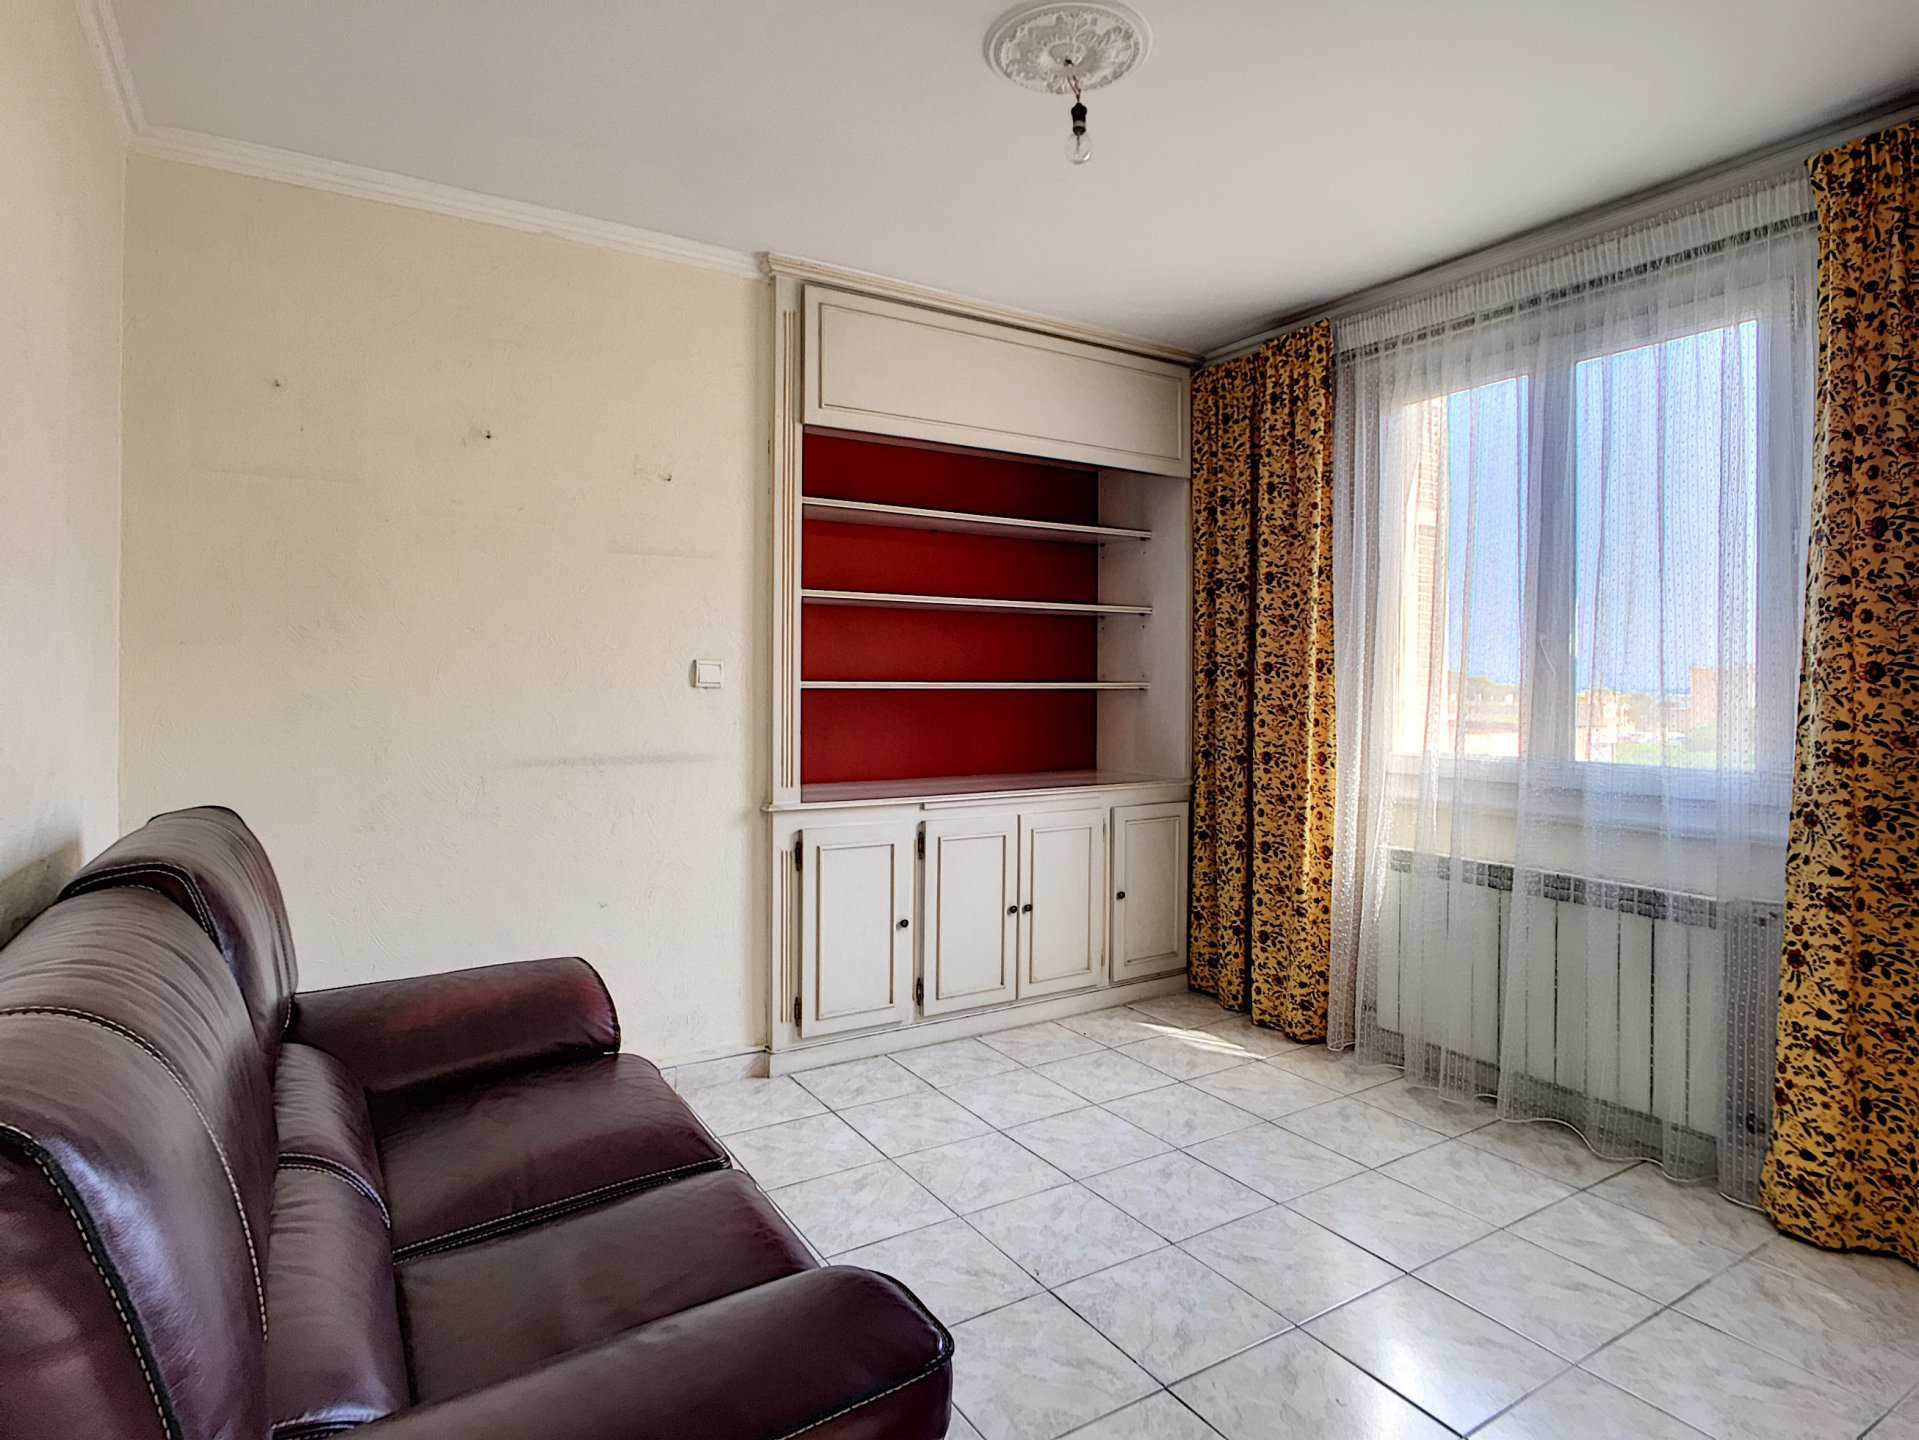 Le Cannet, 3/4 rooms with terrace, garage and cellar